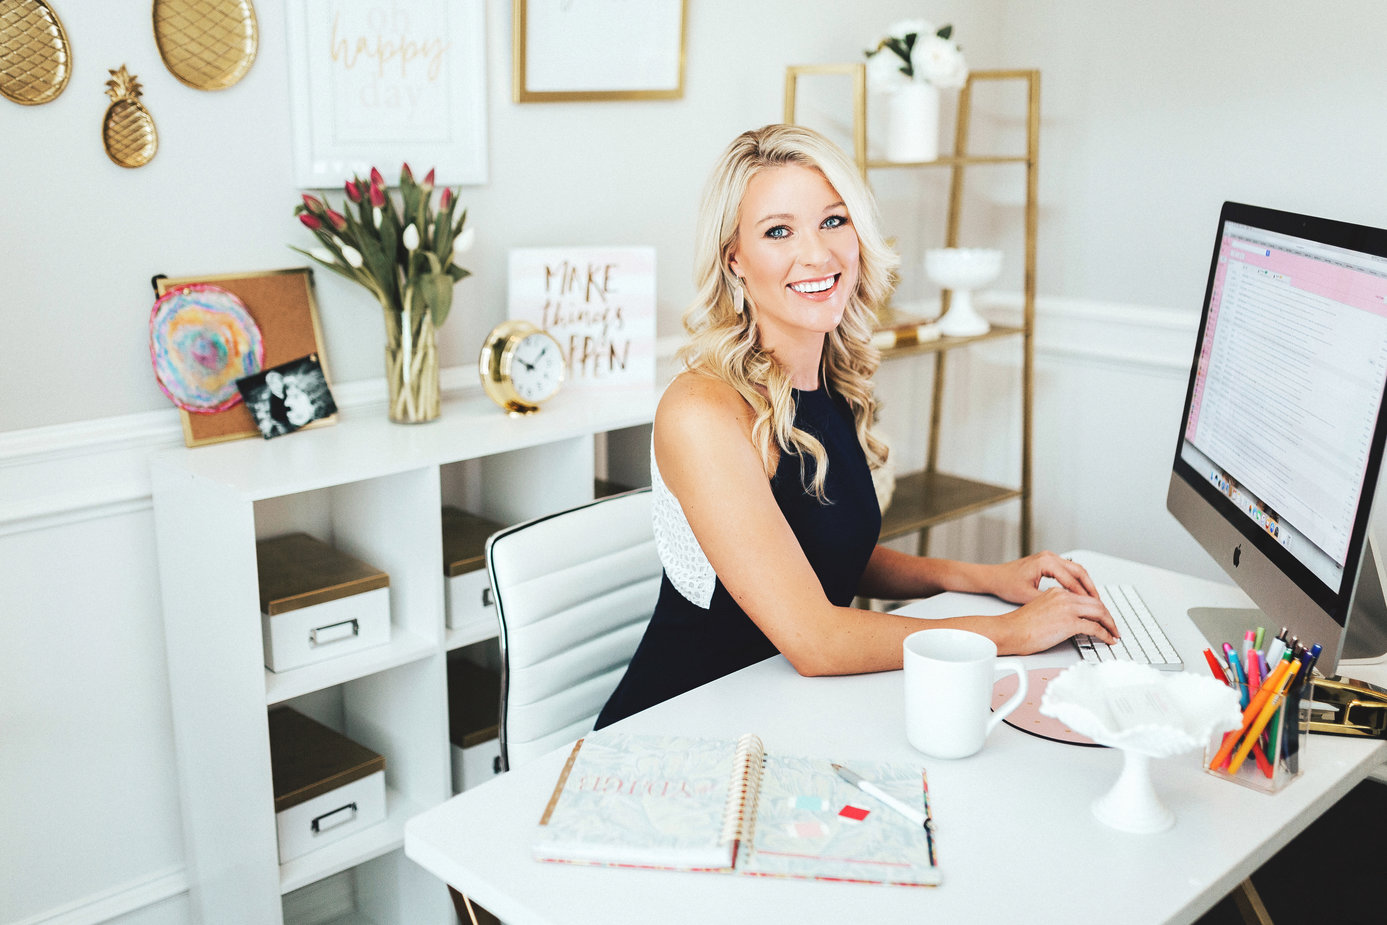 Registered-nurse-turned-fashion-designer Lauren Stokes and her husband Lance Stokes started the company Lauren James Co. in 2013. (Photos by Kristen Grisham Photography)